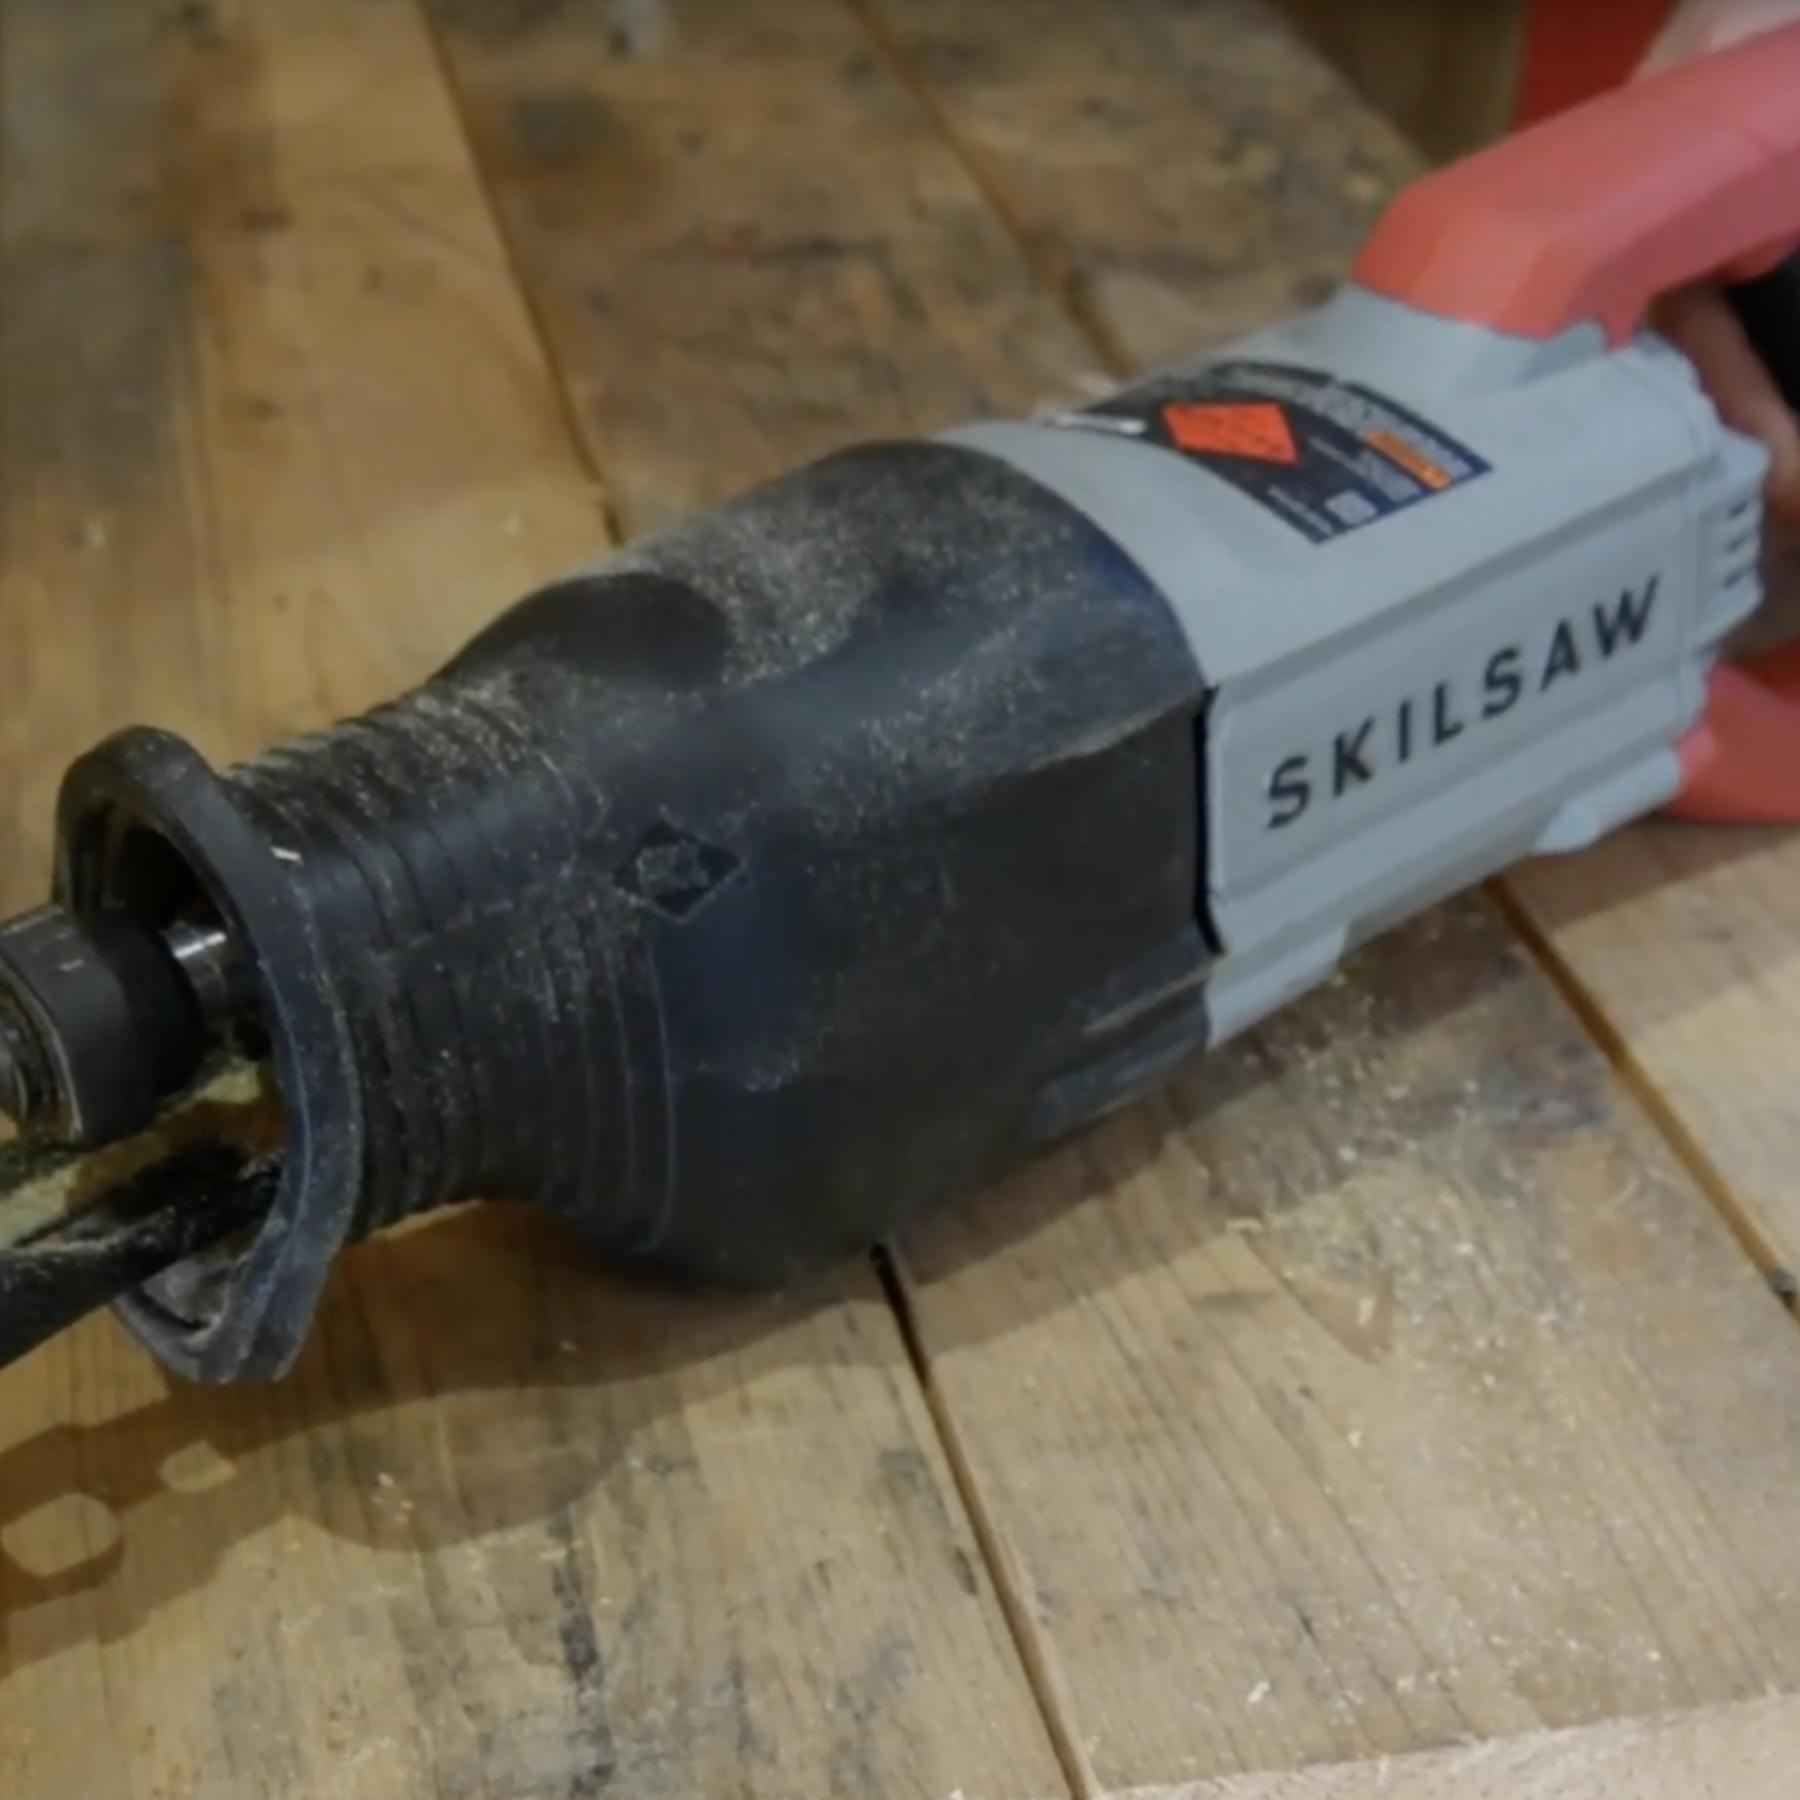 SKILSAW 13 Amp Reciprocating Saw with Buzzkill Technology, SPT44A-00